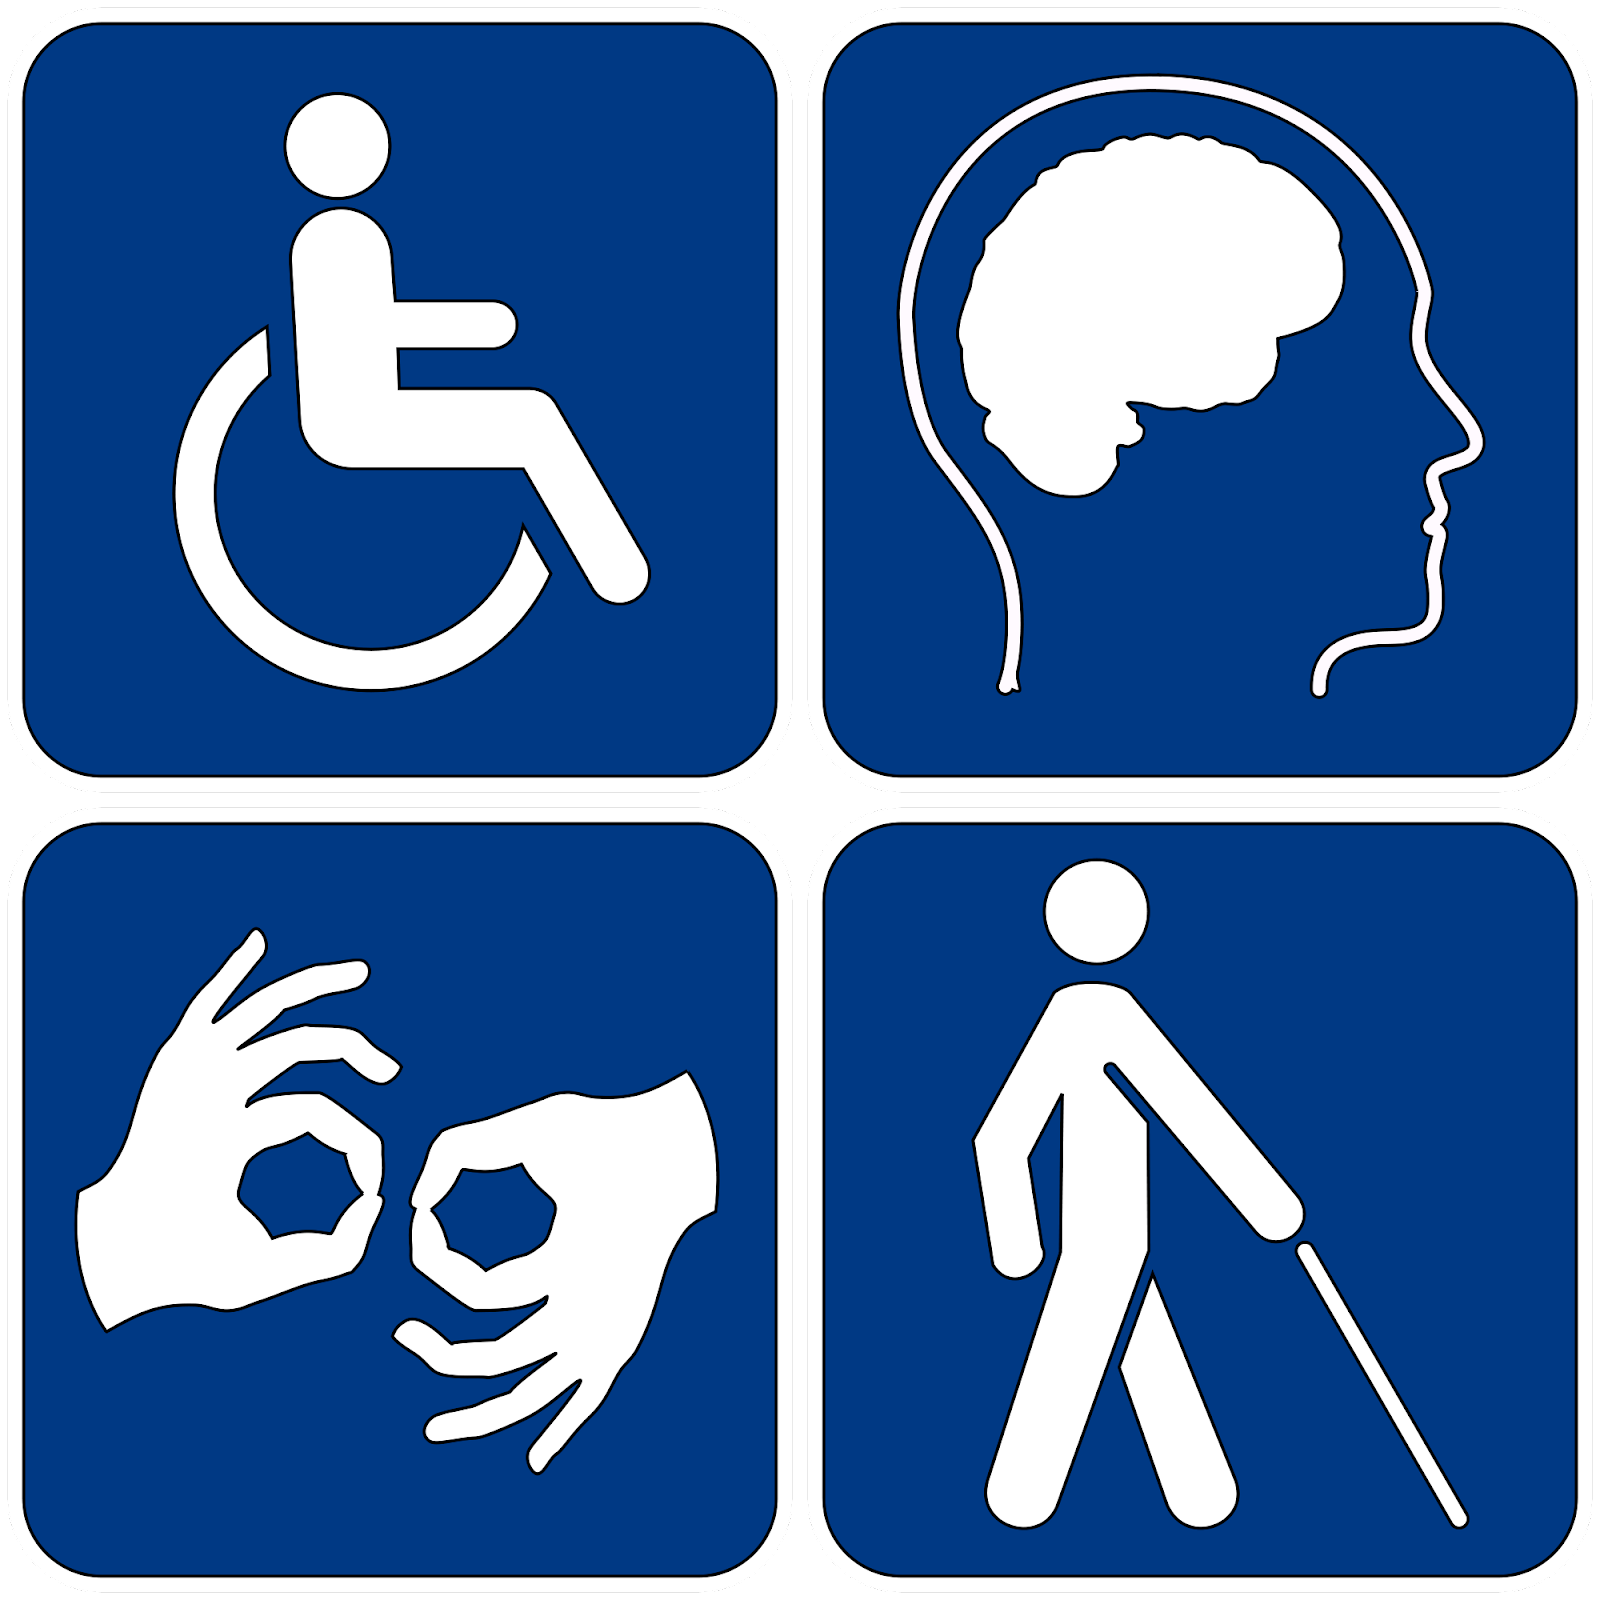 Four symbols representing physical, cognitive, auditory, and visual disabilities